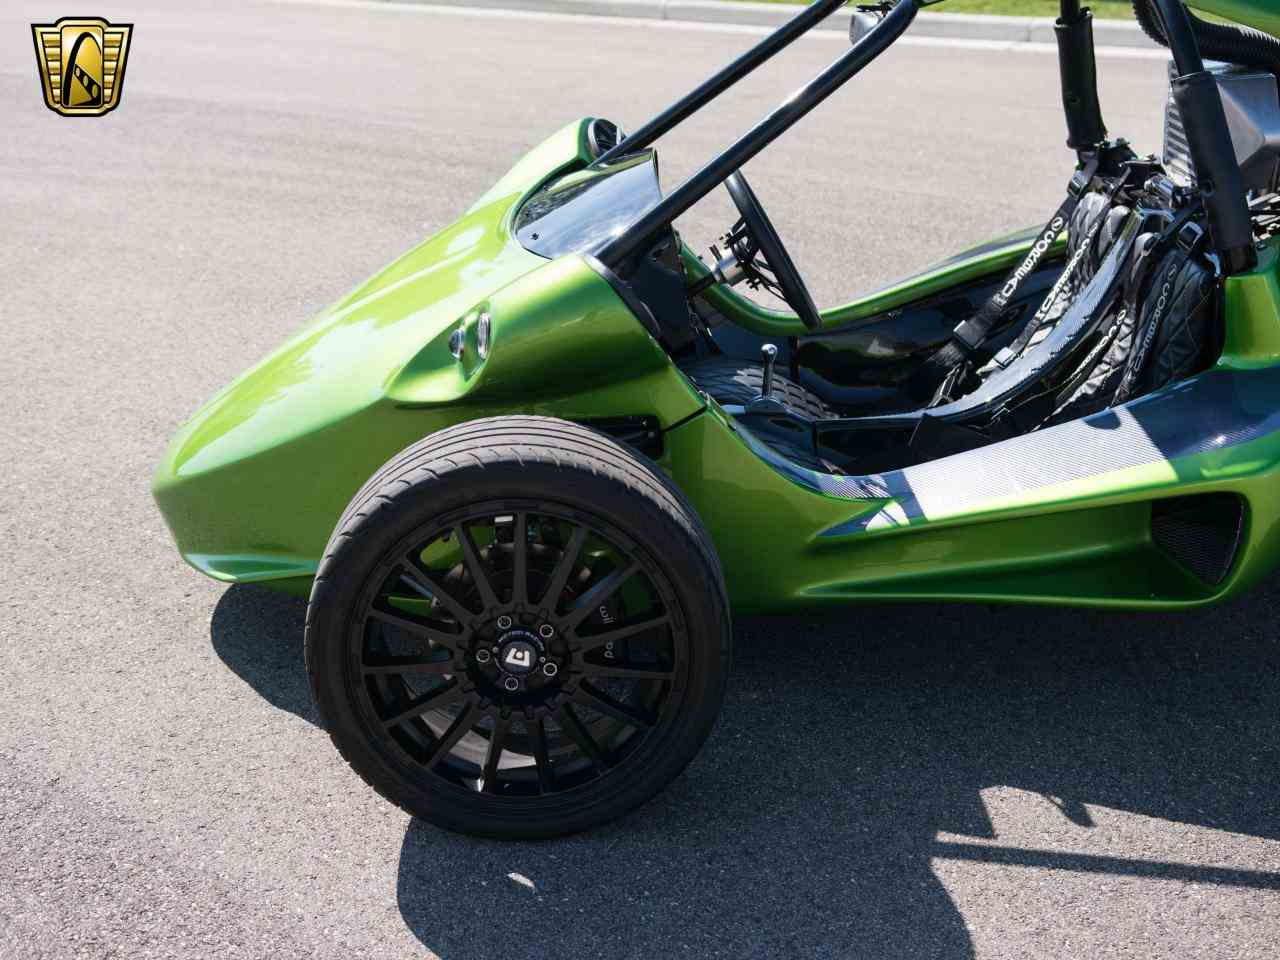 Large Picture of '08 Kawasaki T-Rex Replica located in Wisconsin Offered by Gateway Classic Cars - Milwaukee - L7NA